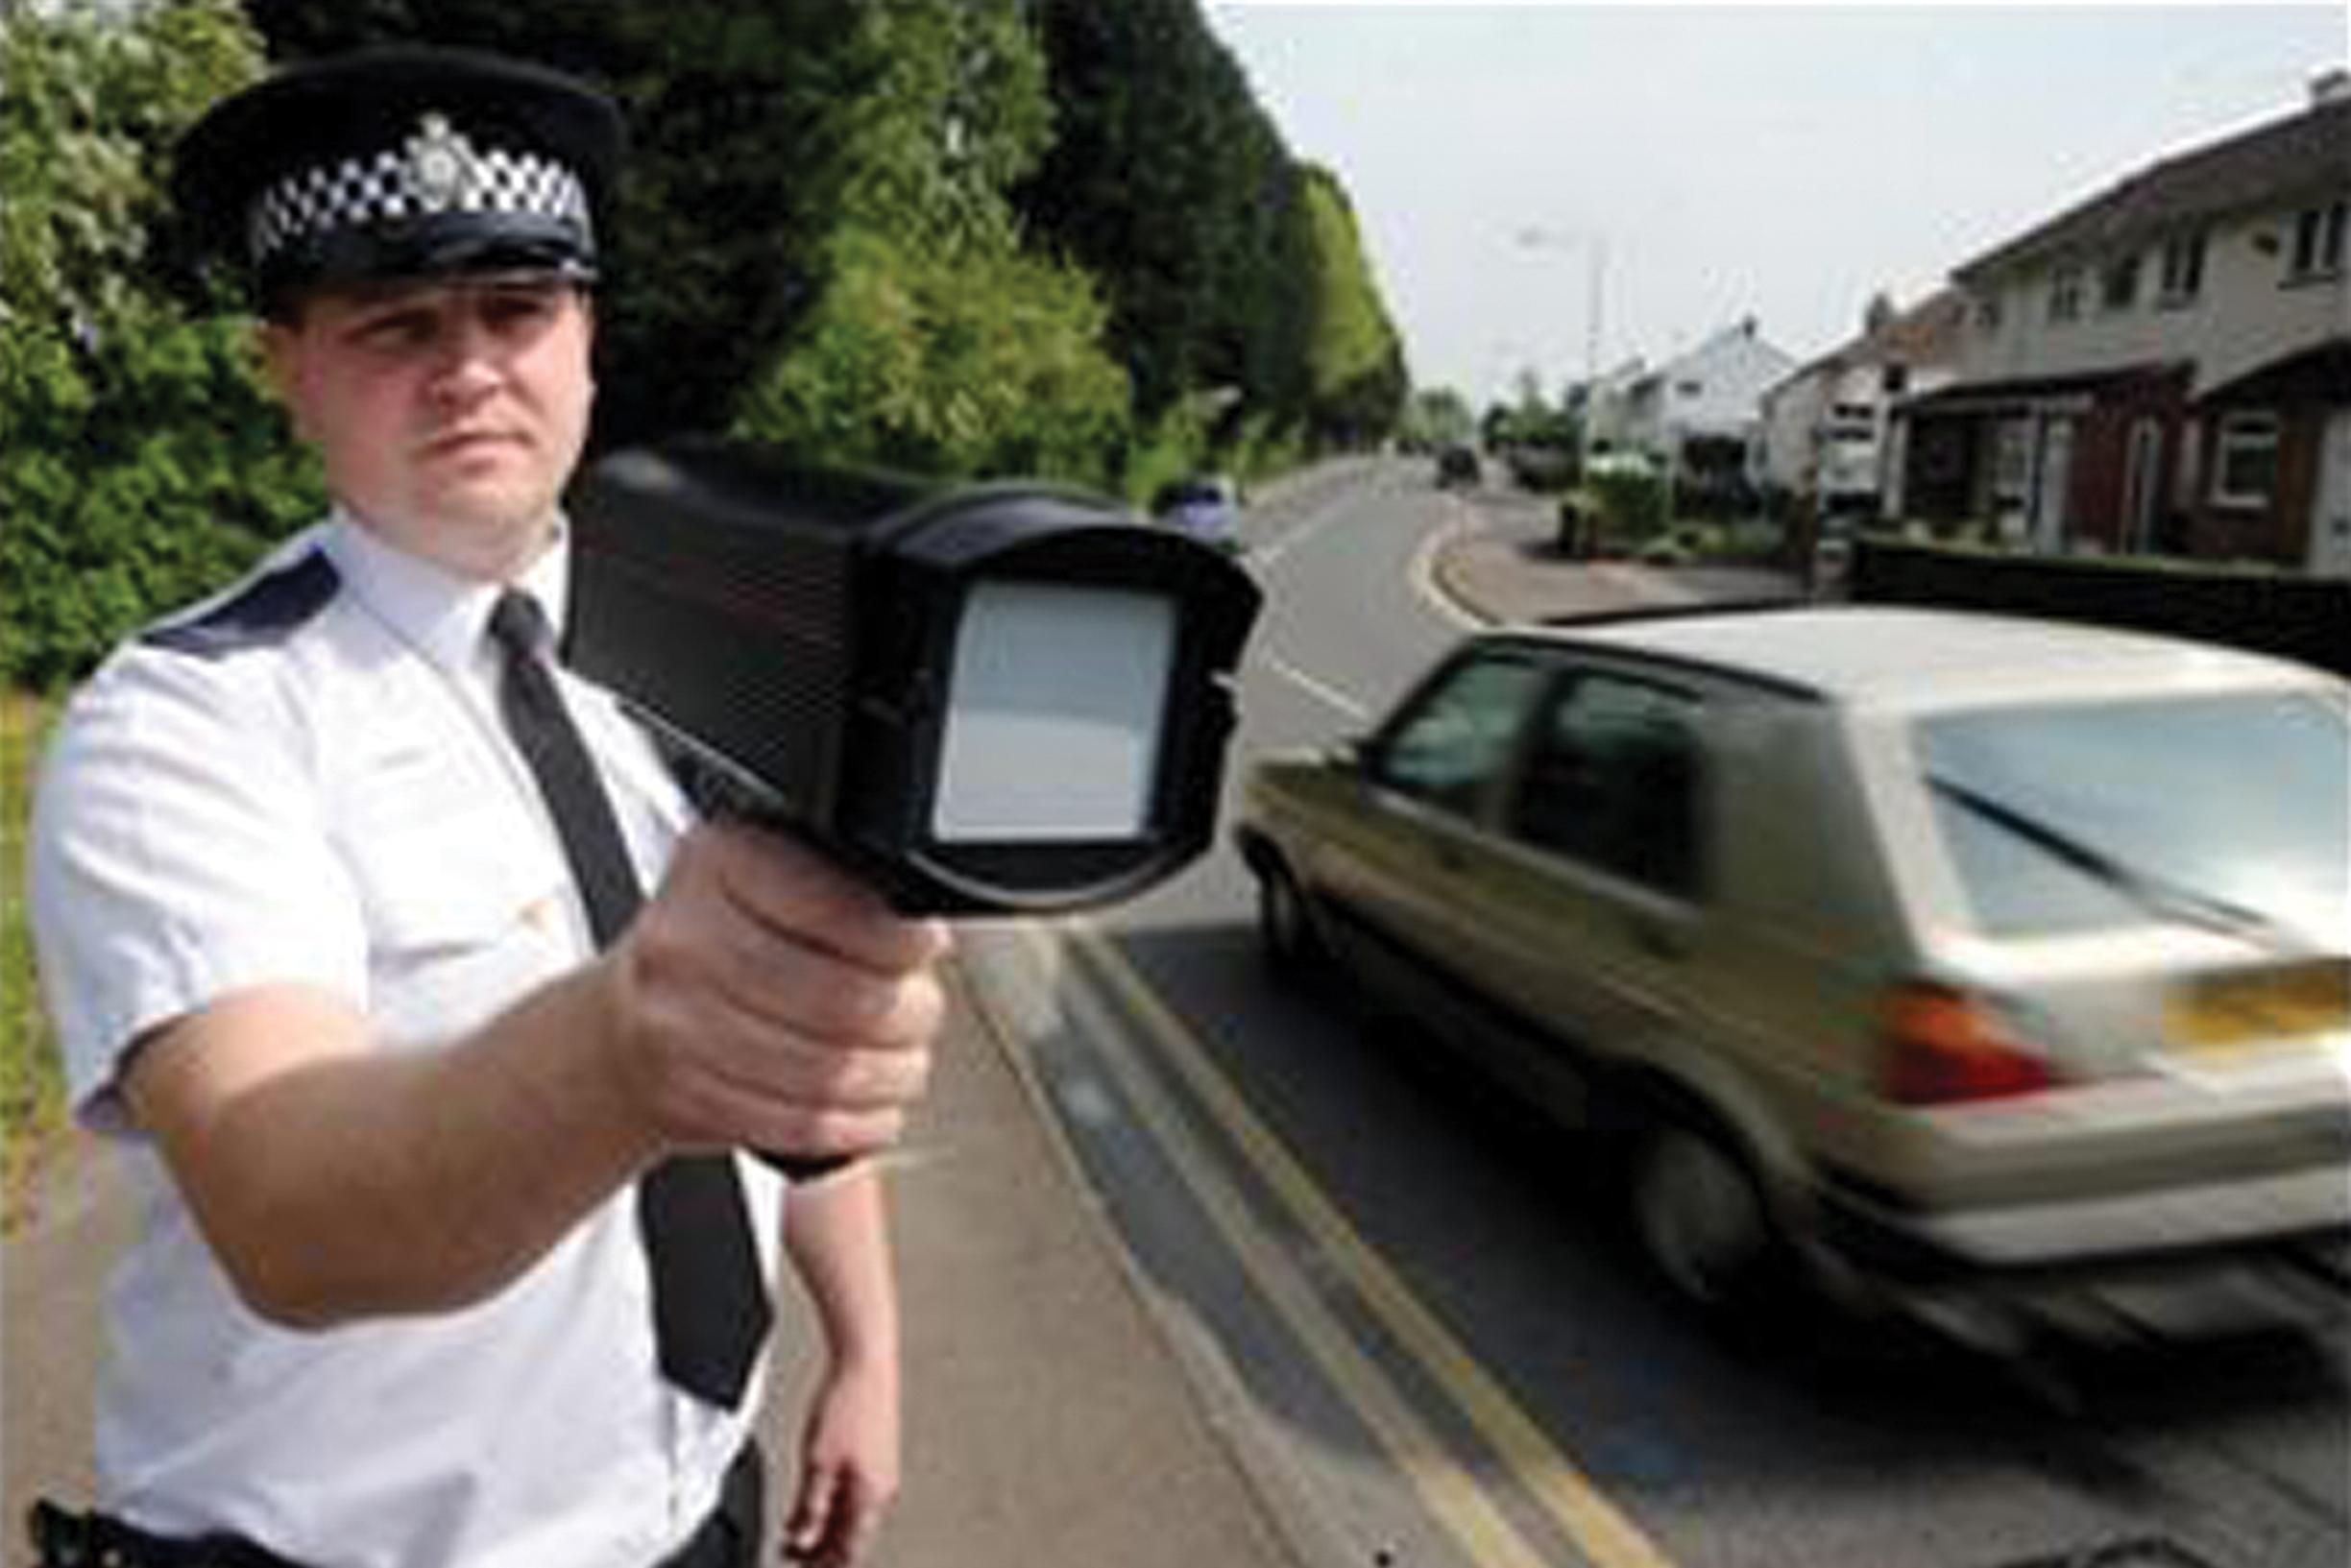 Paying the police to avoid prosecution for speeding is bribery, says the ABD